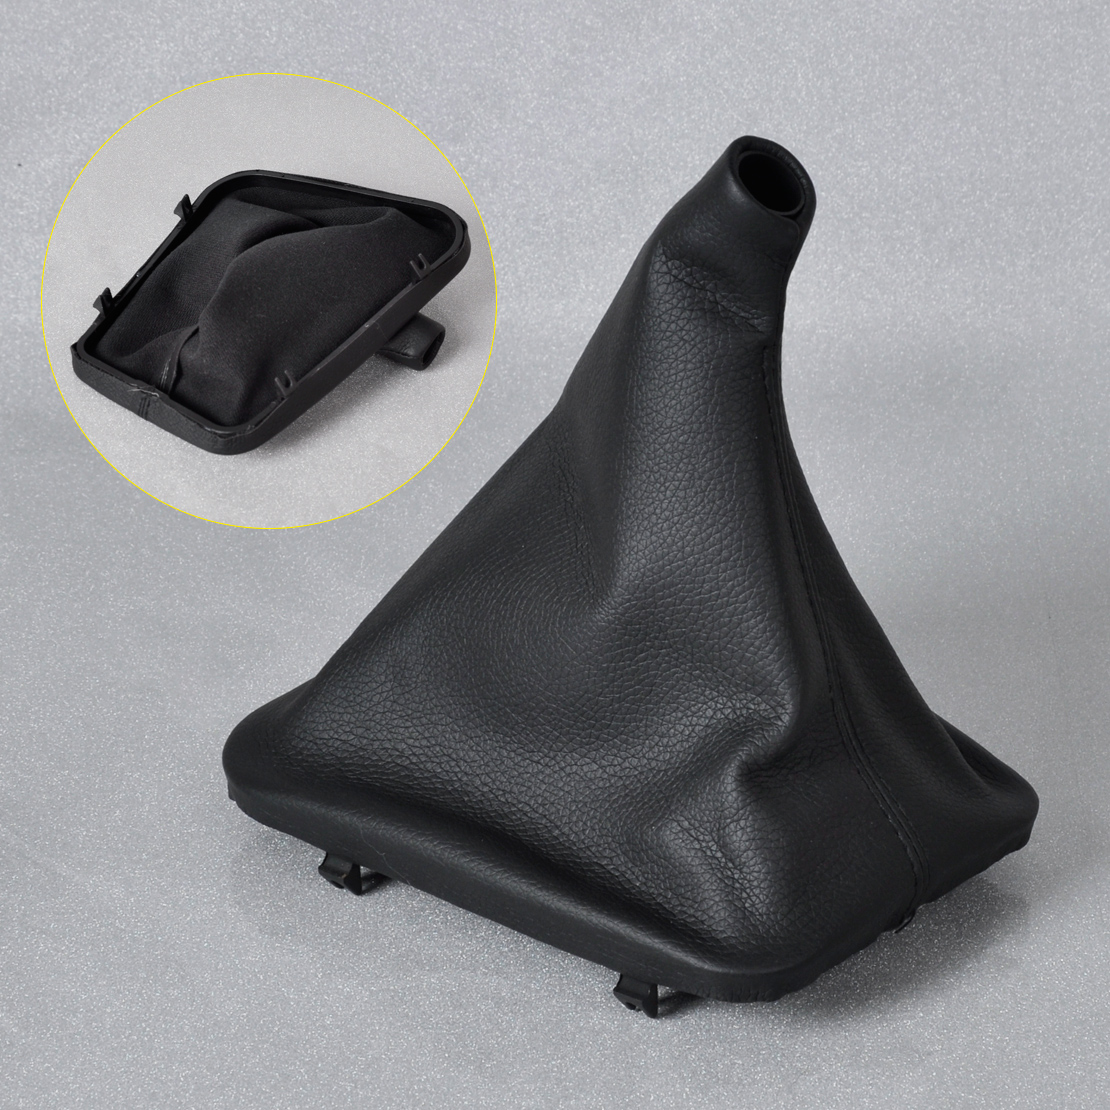 Tracking Brand New 1pc Black PU Leather Gear Boot Gaiter Collar Cover For Mercedes Benz W123 W126 W140 W190 Benz C Class in Gear Shift Knob from Automobiles Motorcycles